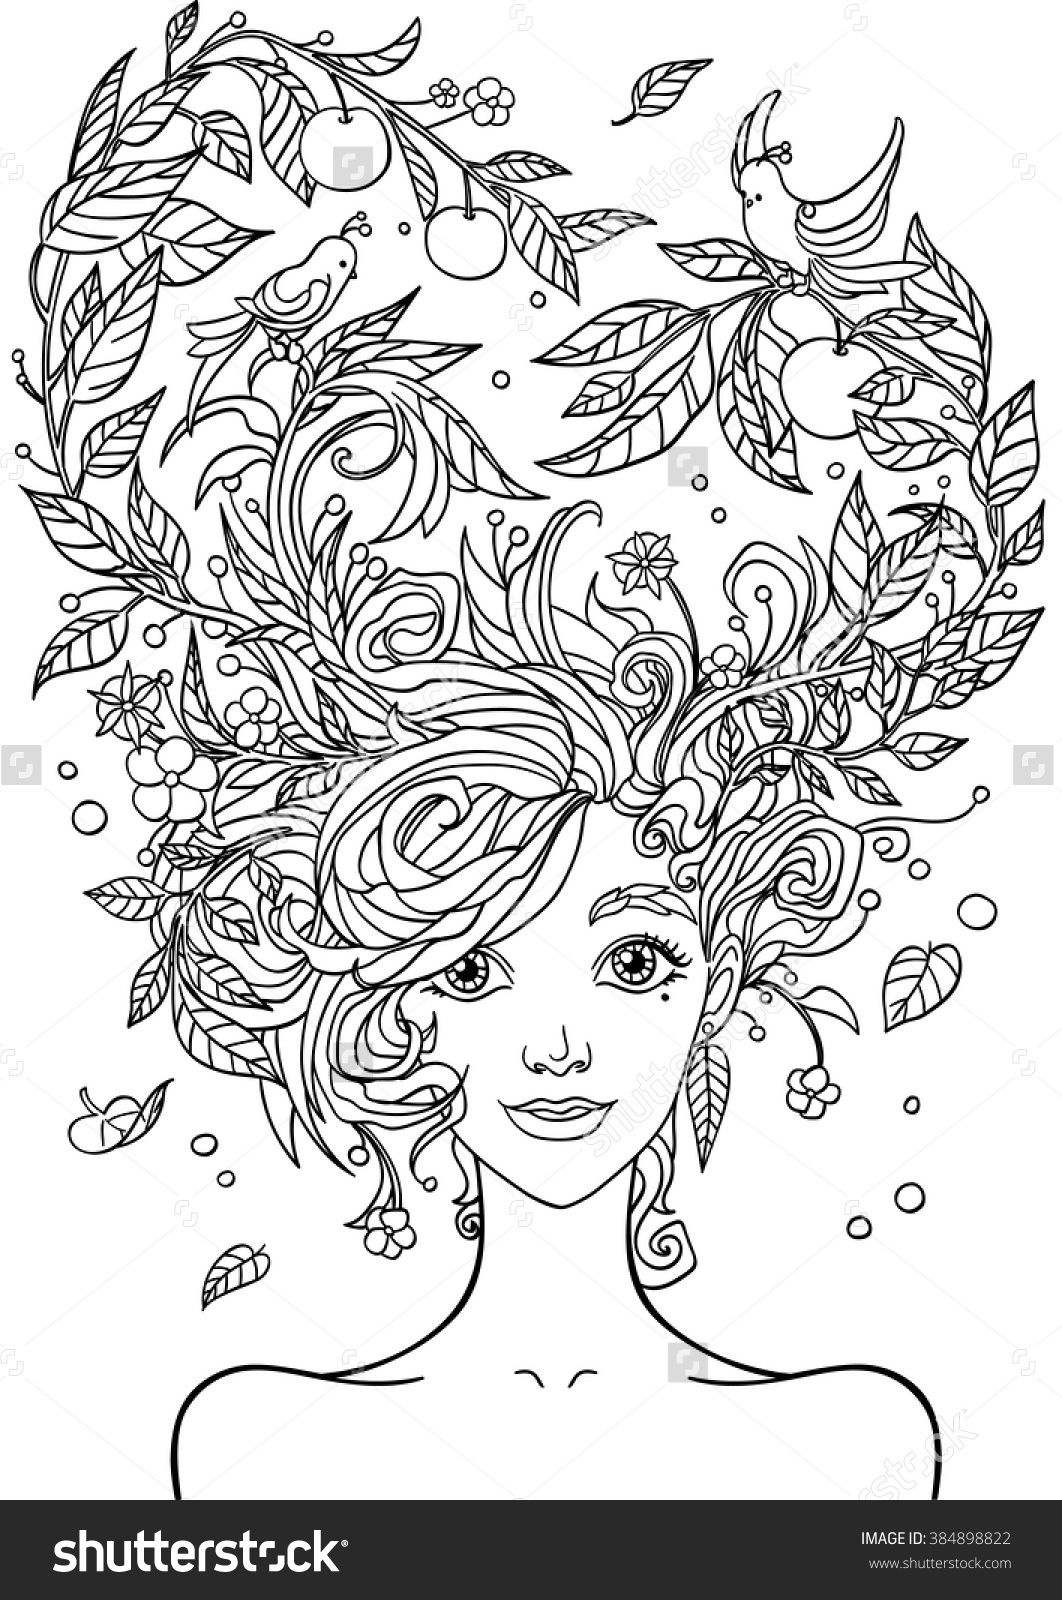 Image Result For Adult Colouring Pages Vector Art And Colouring